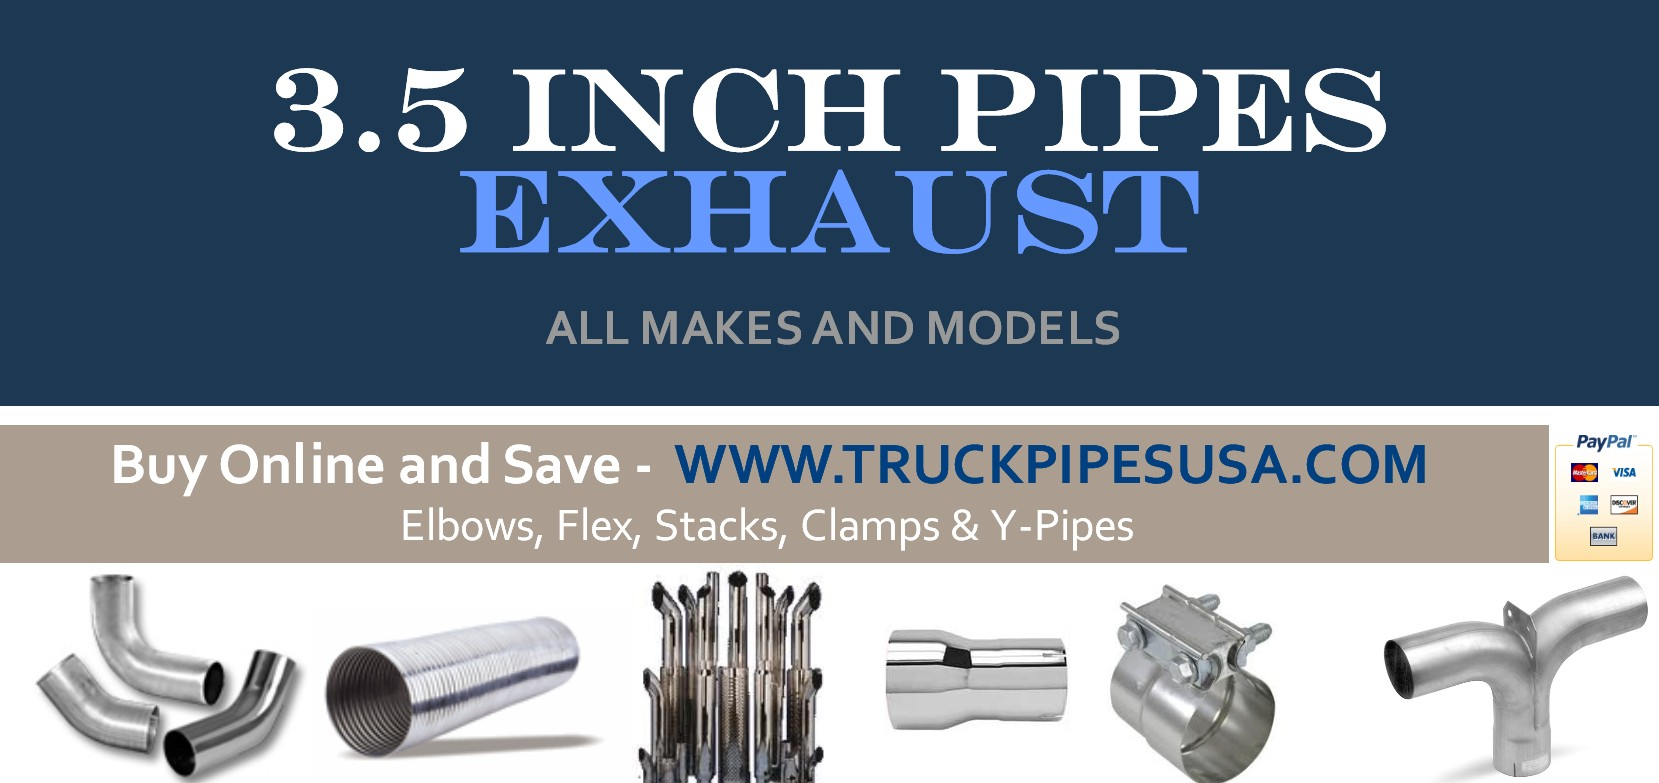 3-5inch-exhaust-pipes-for-big-rig-trucks-from-truckpipesusa.jpg